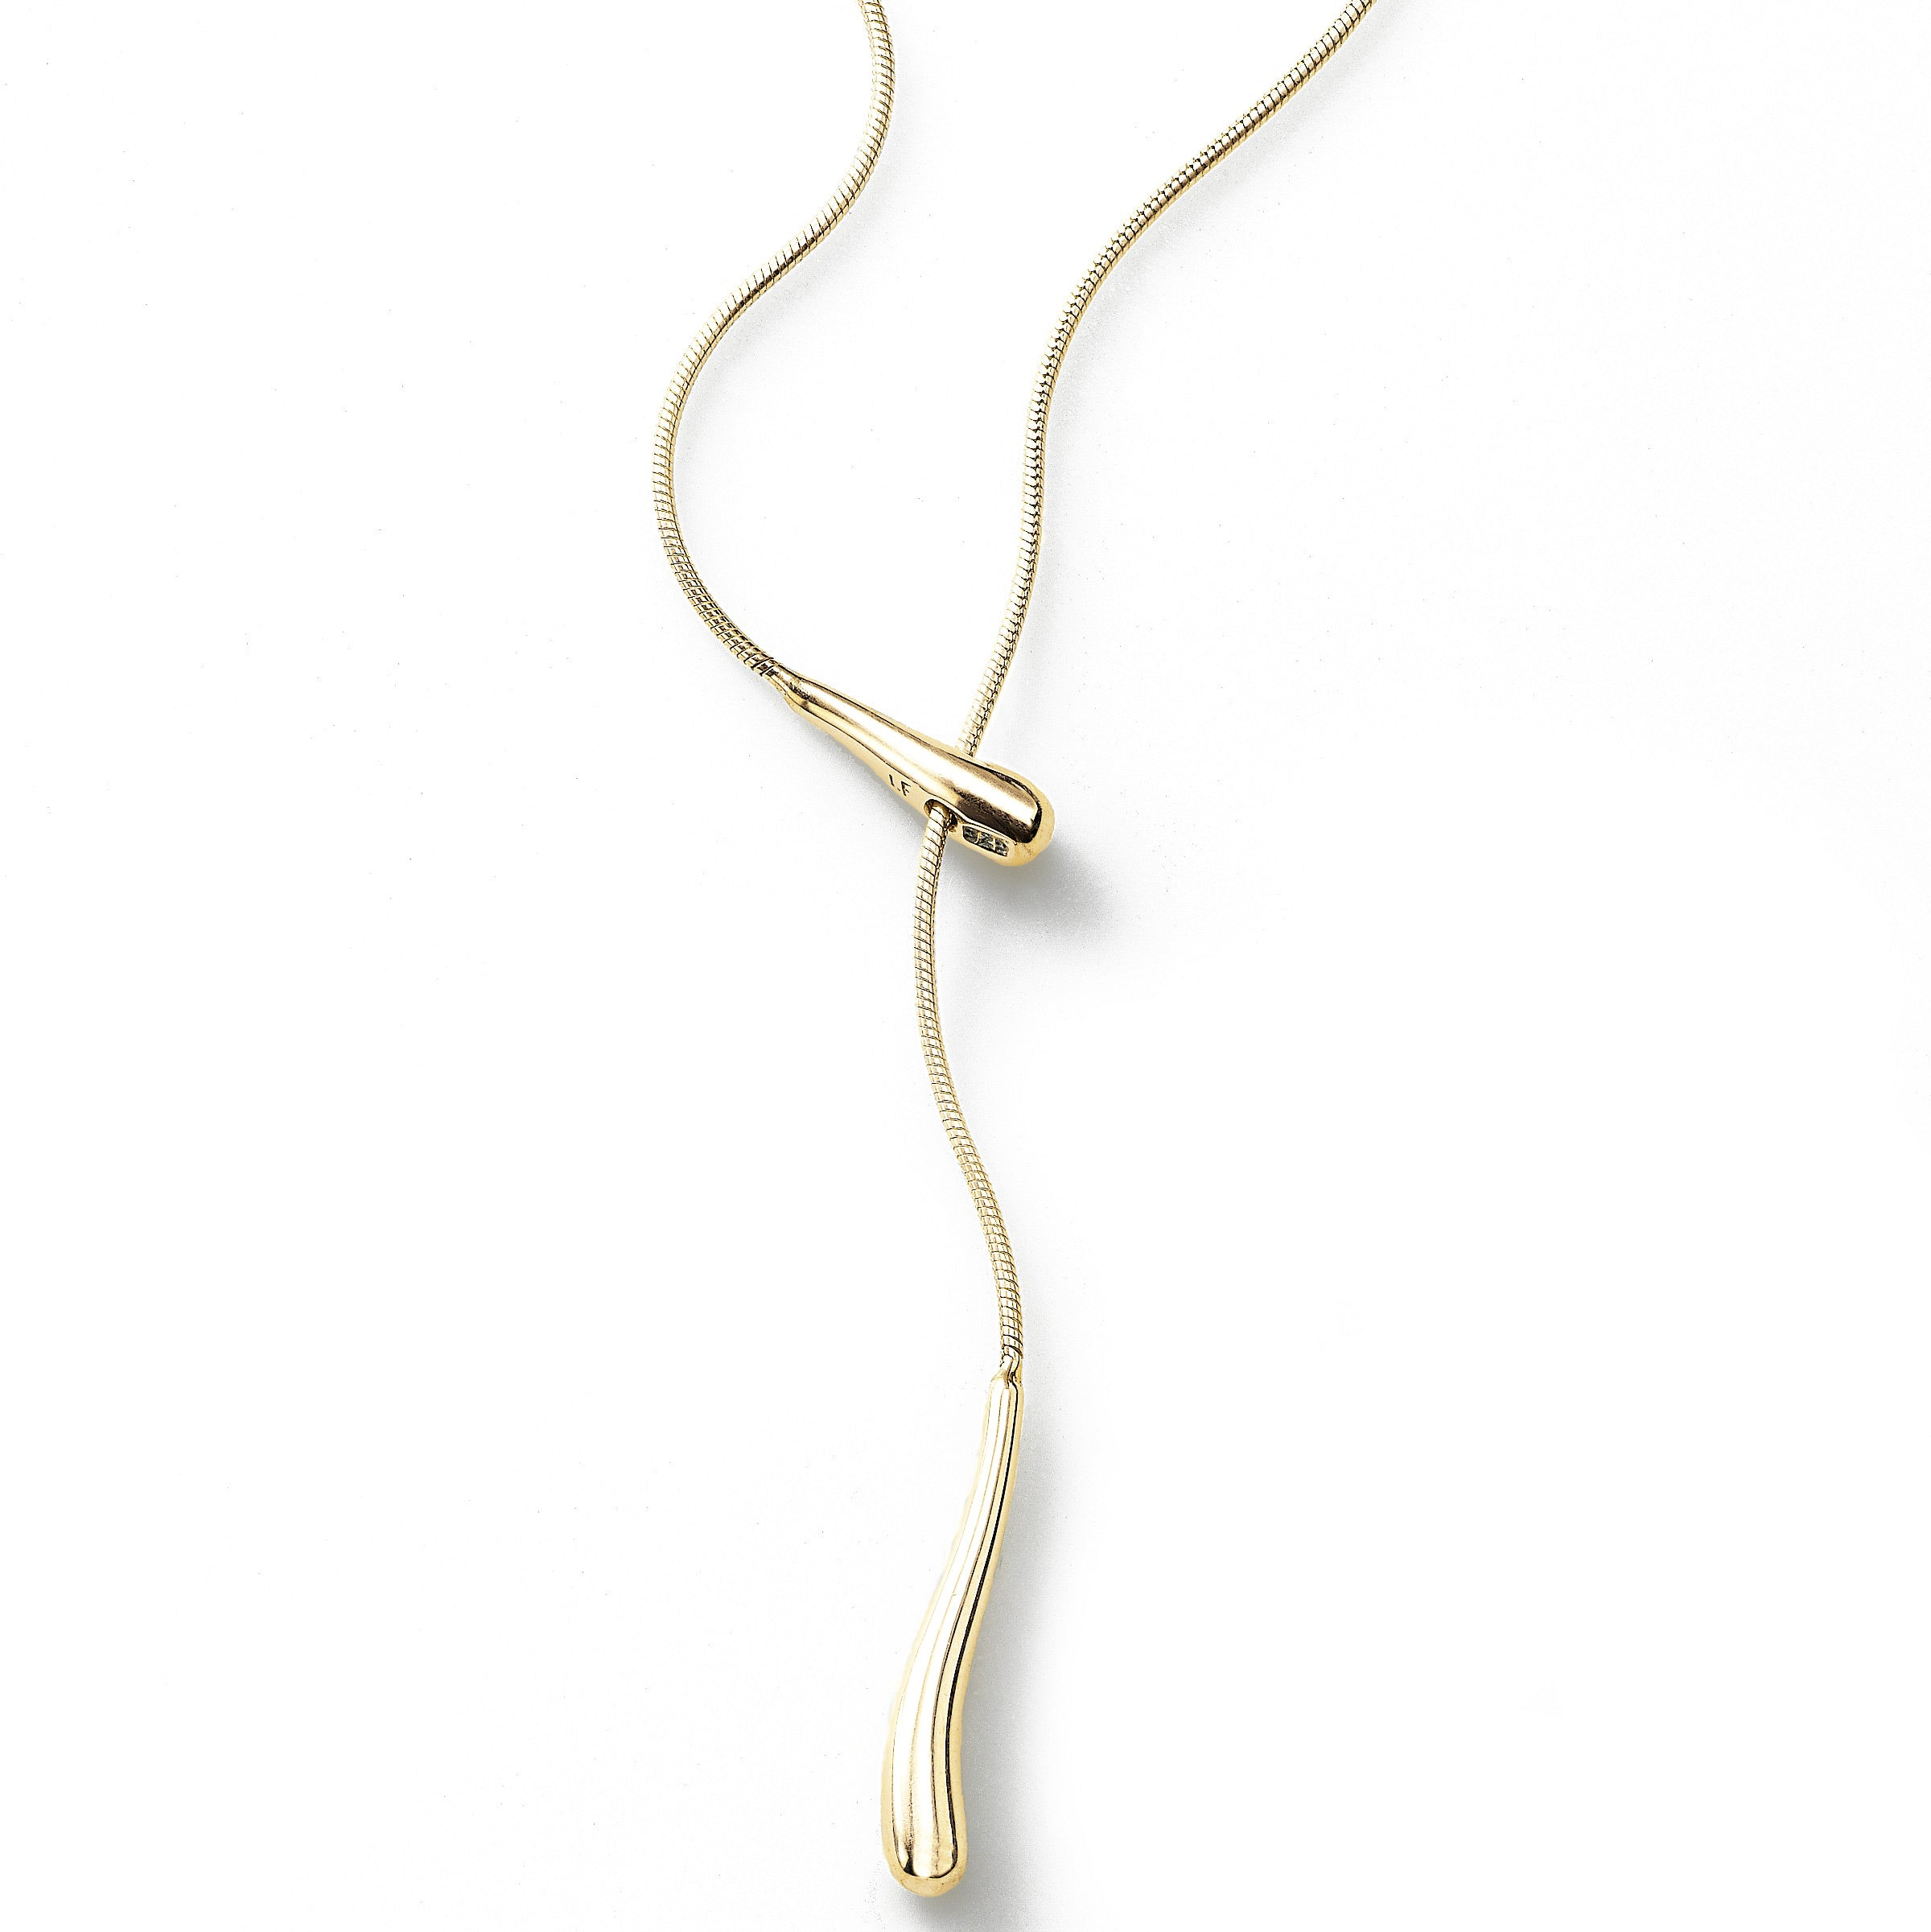 Lariat Style Y Necklace, 16 inch, Sterling Silver and 14K Gold Plating